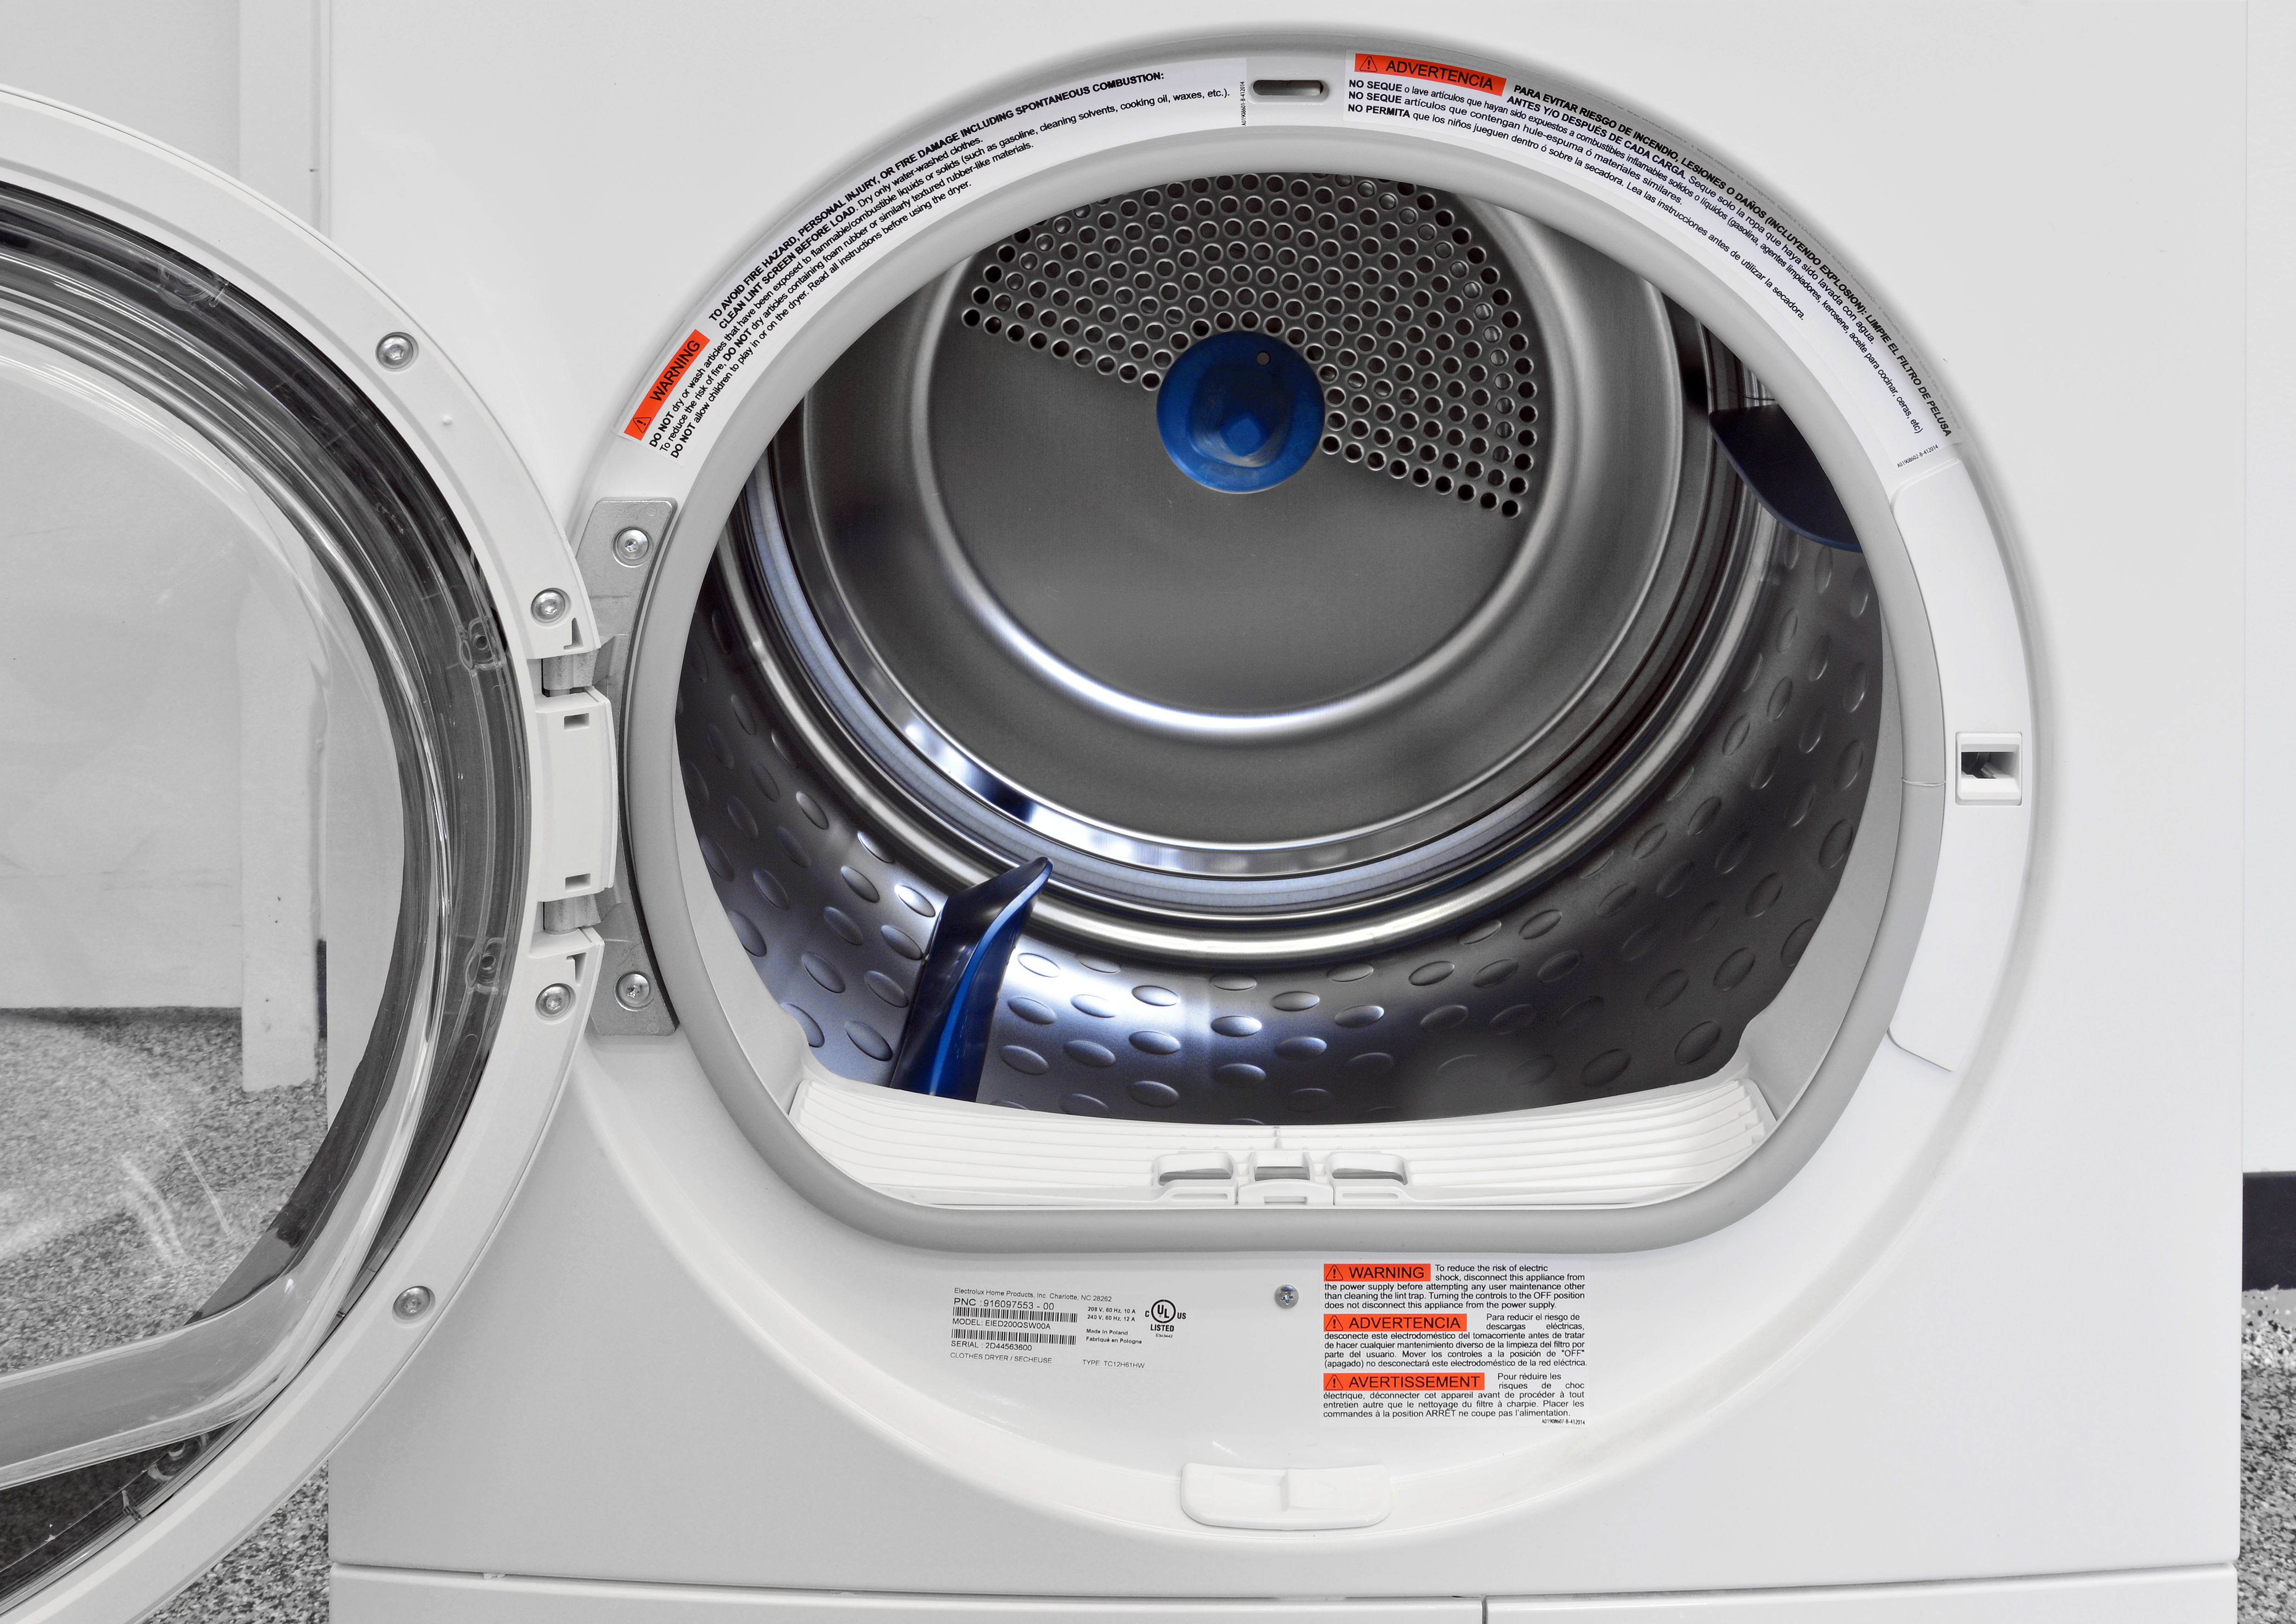 The Electrolux EIED200QSW's 4-cu.-ft. stainless steel drum is large for a compact.